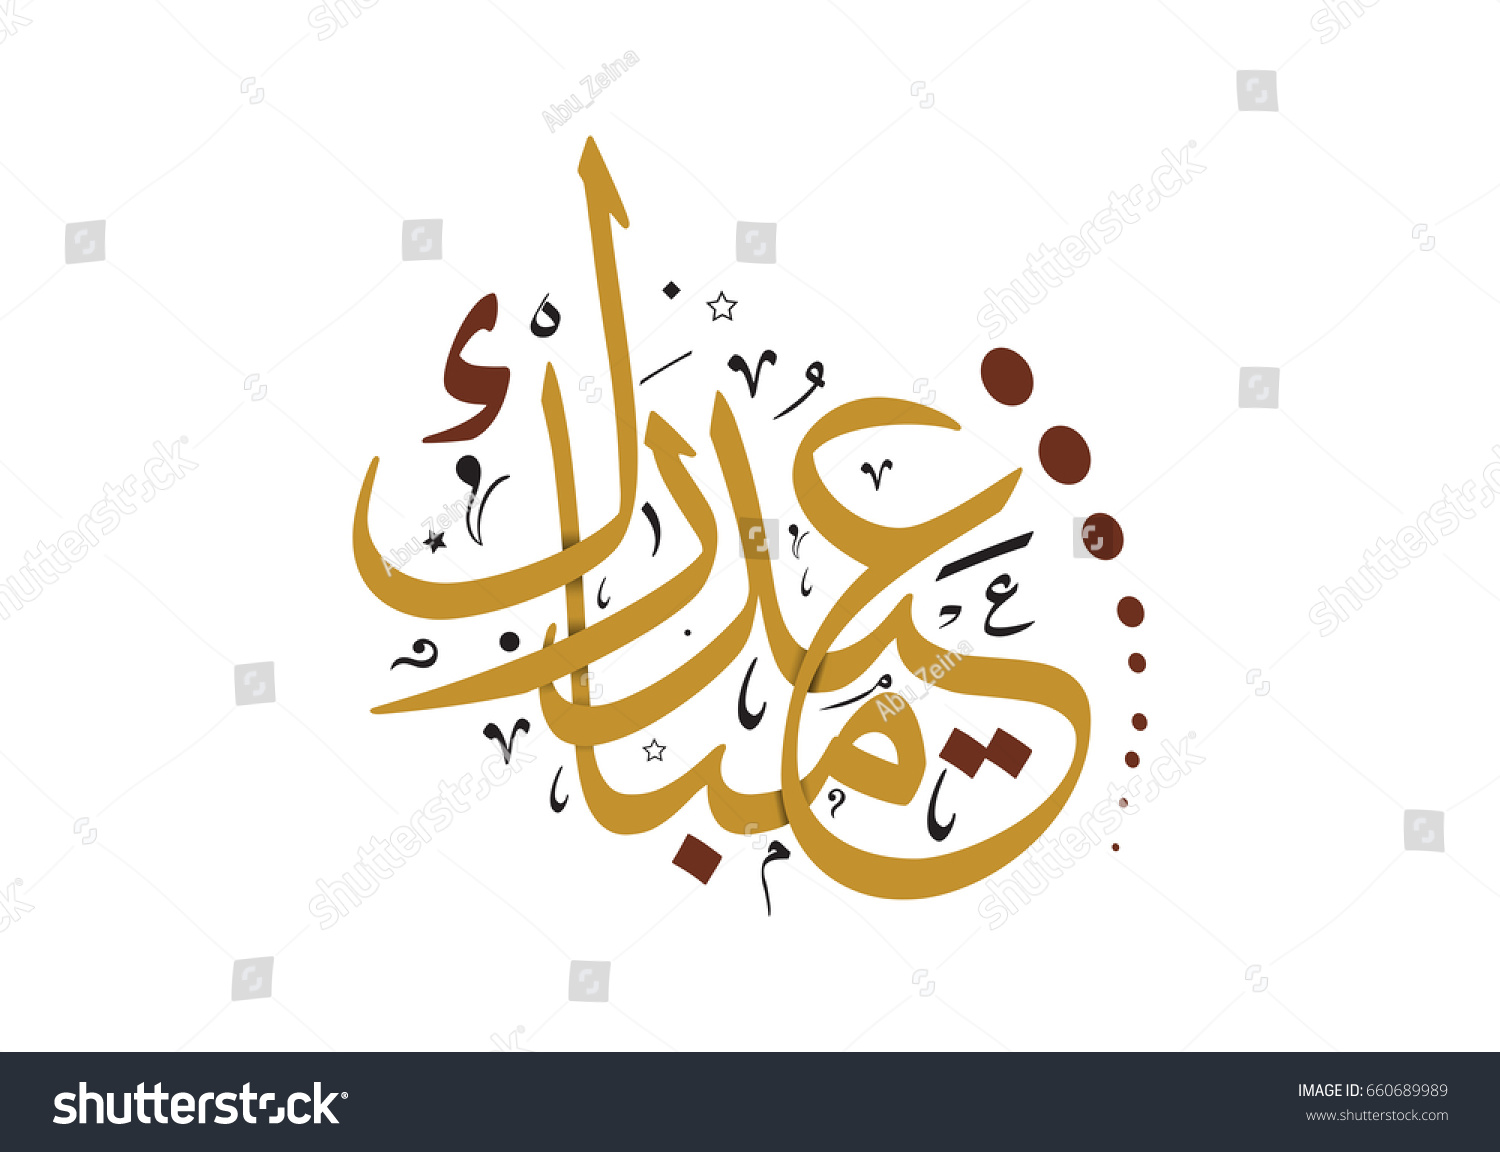 Creative arabic calligraphy type eid greeting stock vector 660689989 creative arabic calligraphy type for eid greeting eid mubarak calligraphy translated as blessed kristyandbryce Image collections